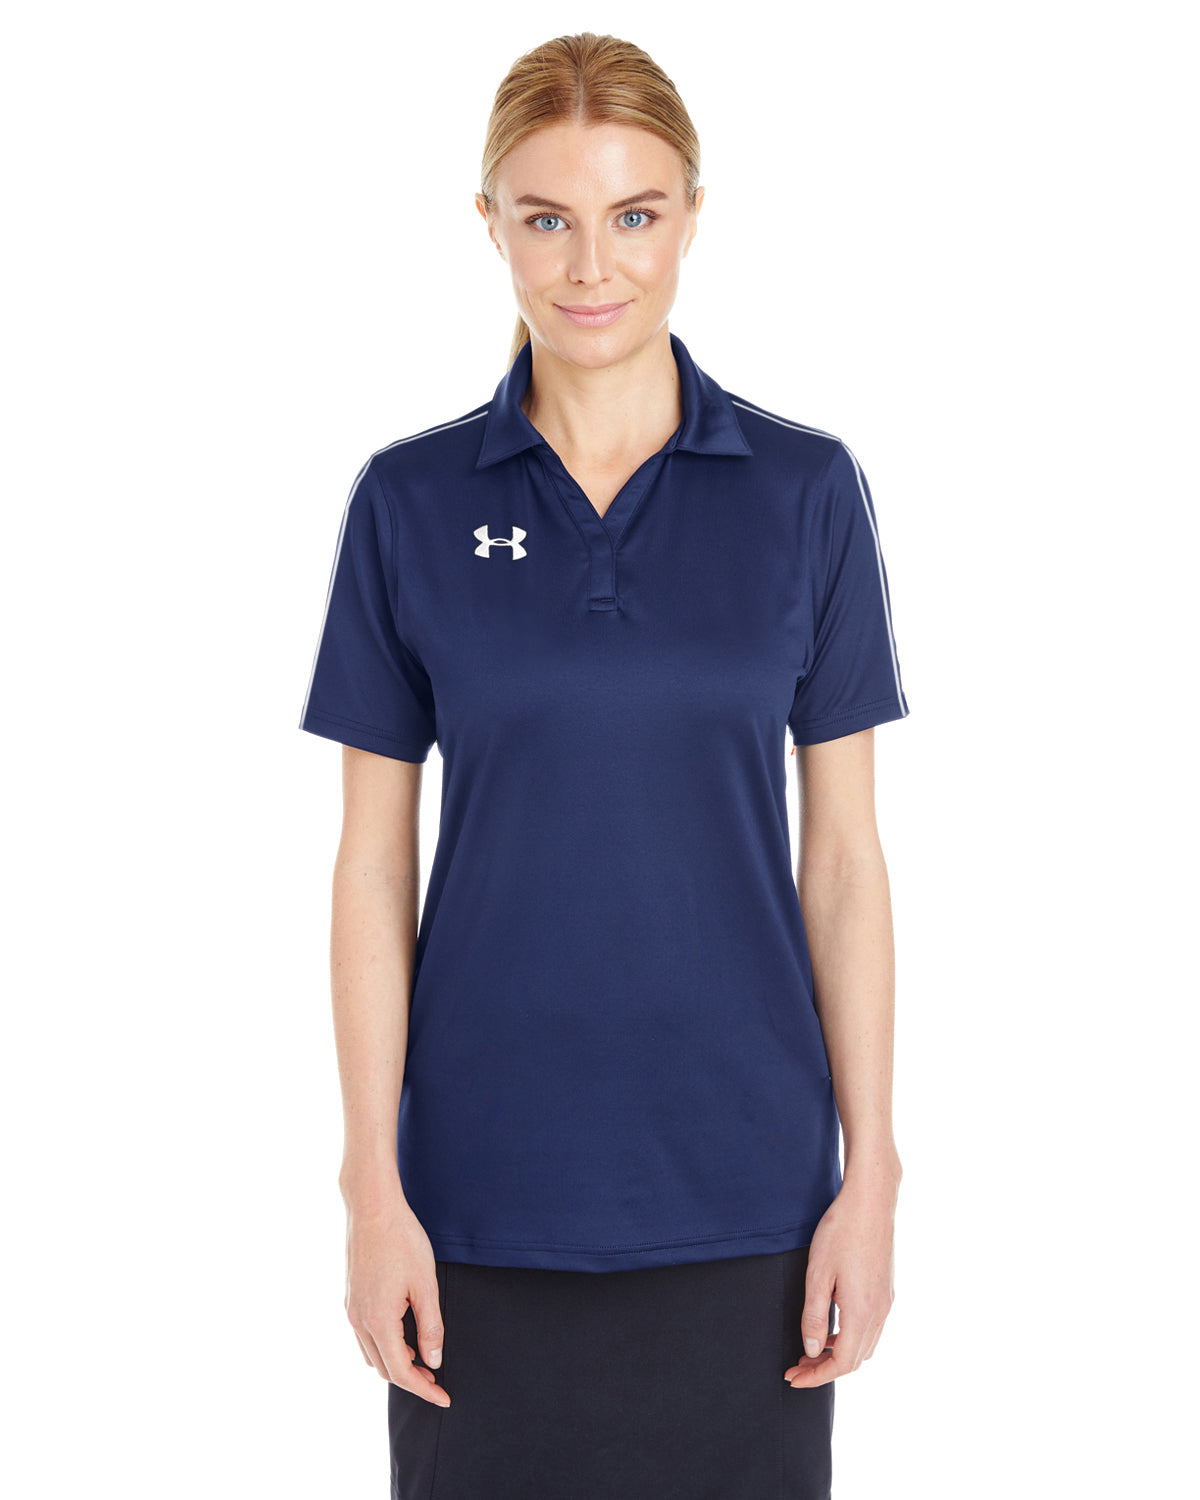 UNDER ARMOUR LADIES' UA CORP TECH POLO